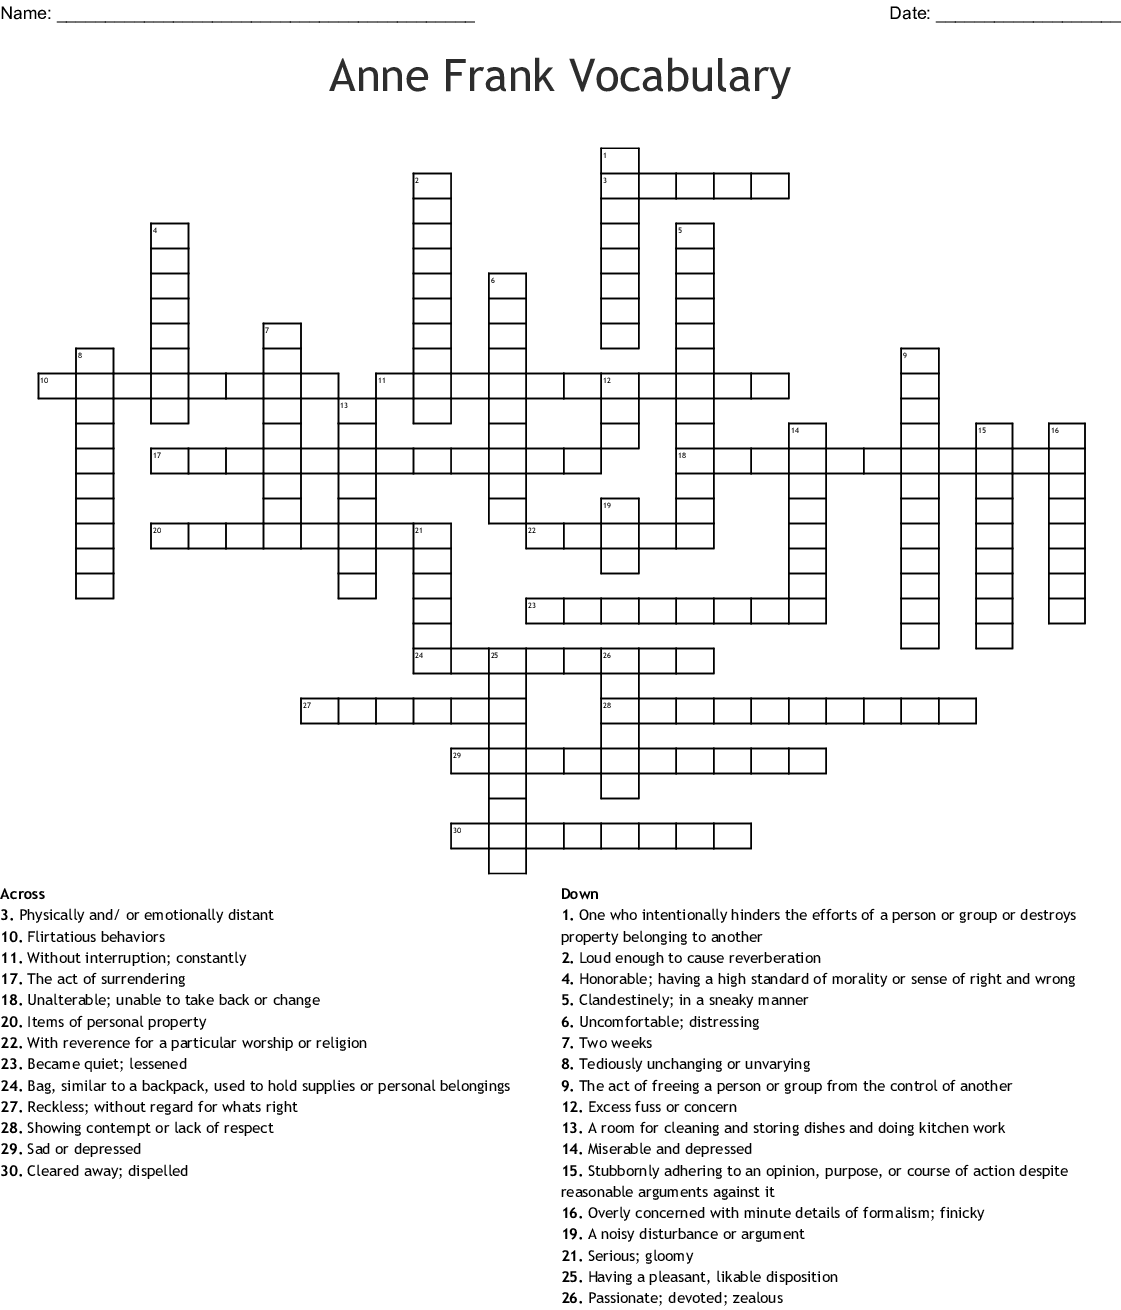 Anne Frank Diary Of A Young Girl Vocabulary Crossword